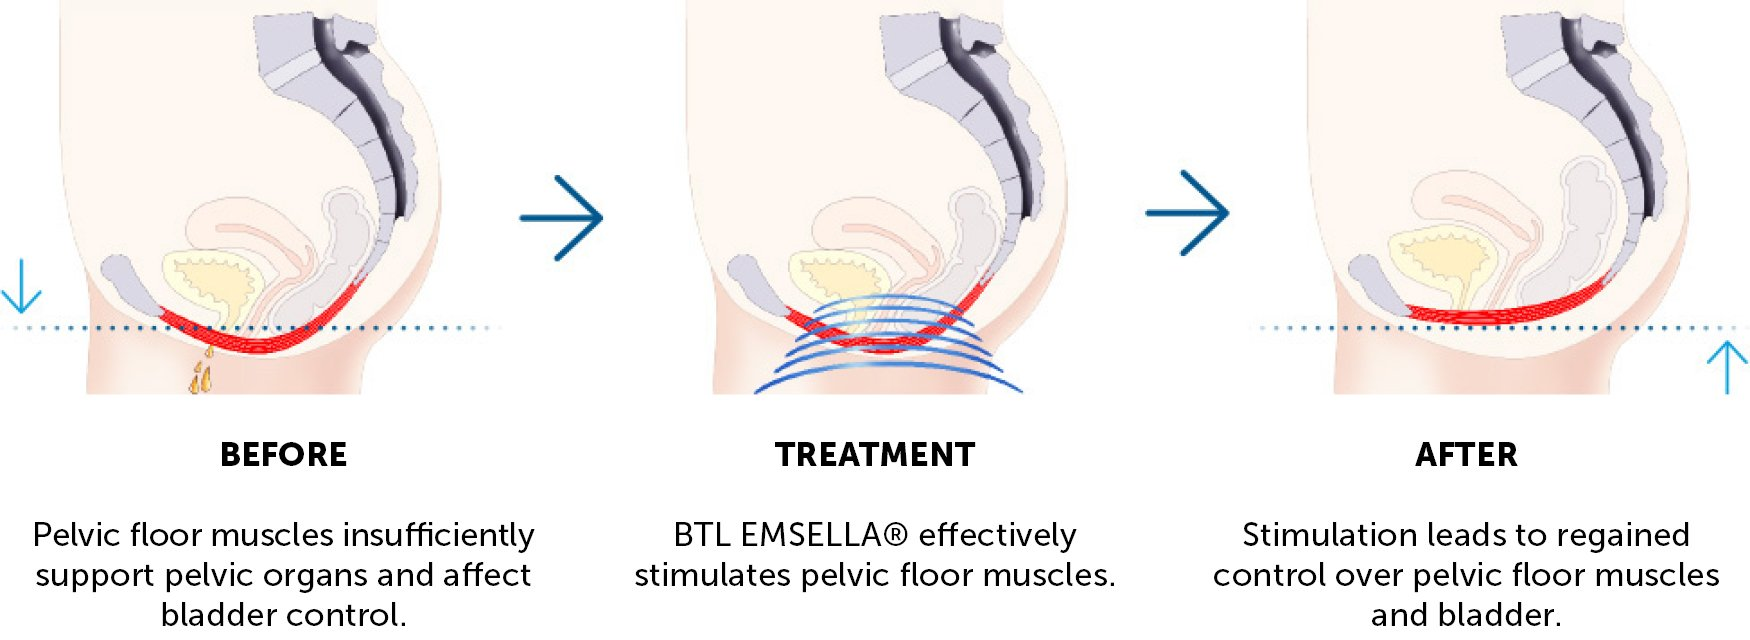 Emsella Incontinence Treatment Results Sparx Aesthetics Hampshire